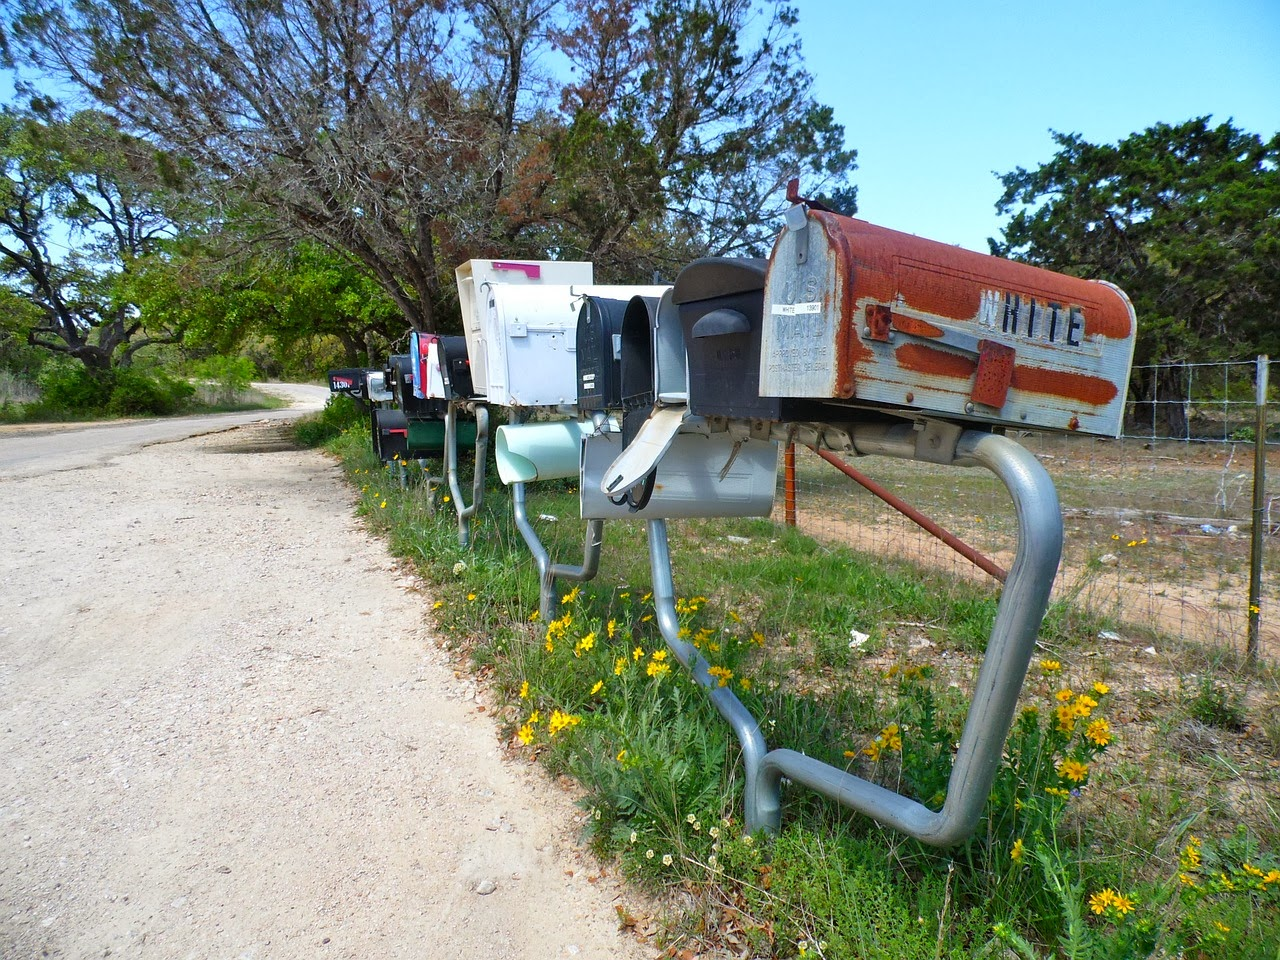 Tiny house homestead why small town post offices rock for Does homesteading still exist